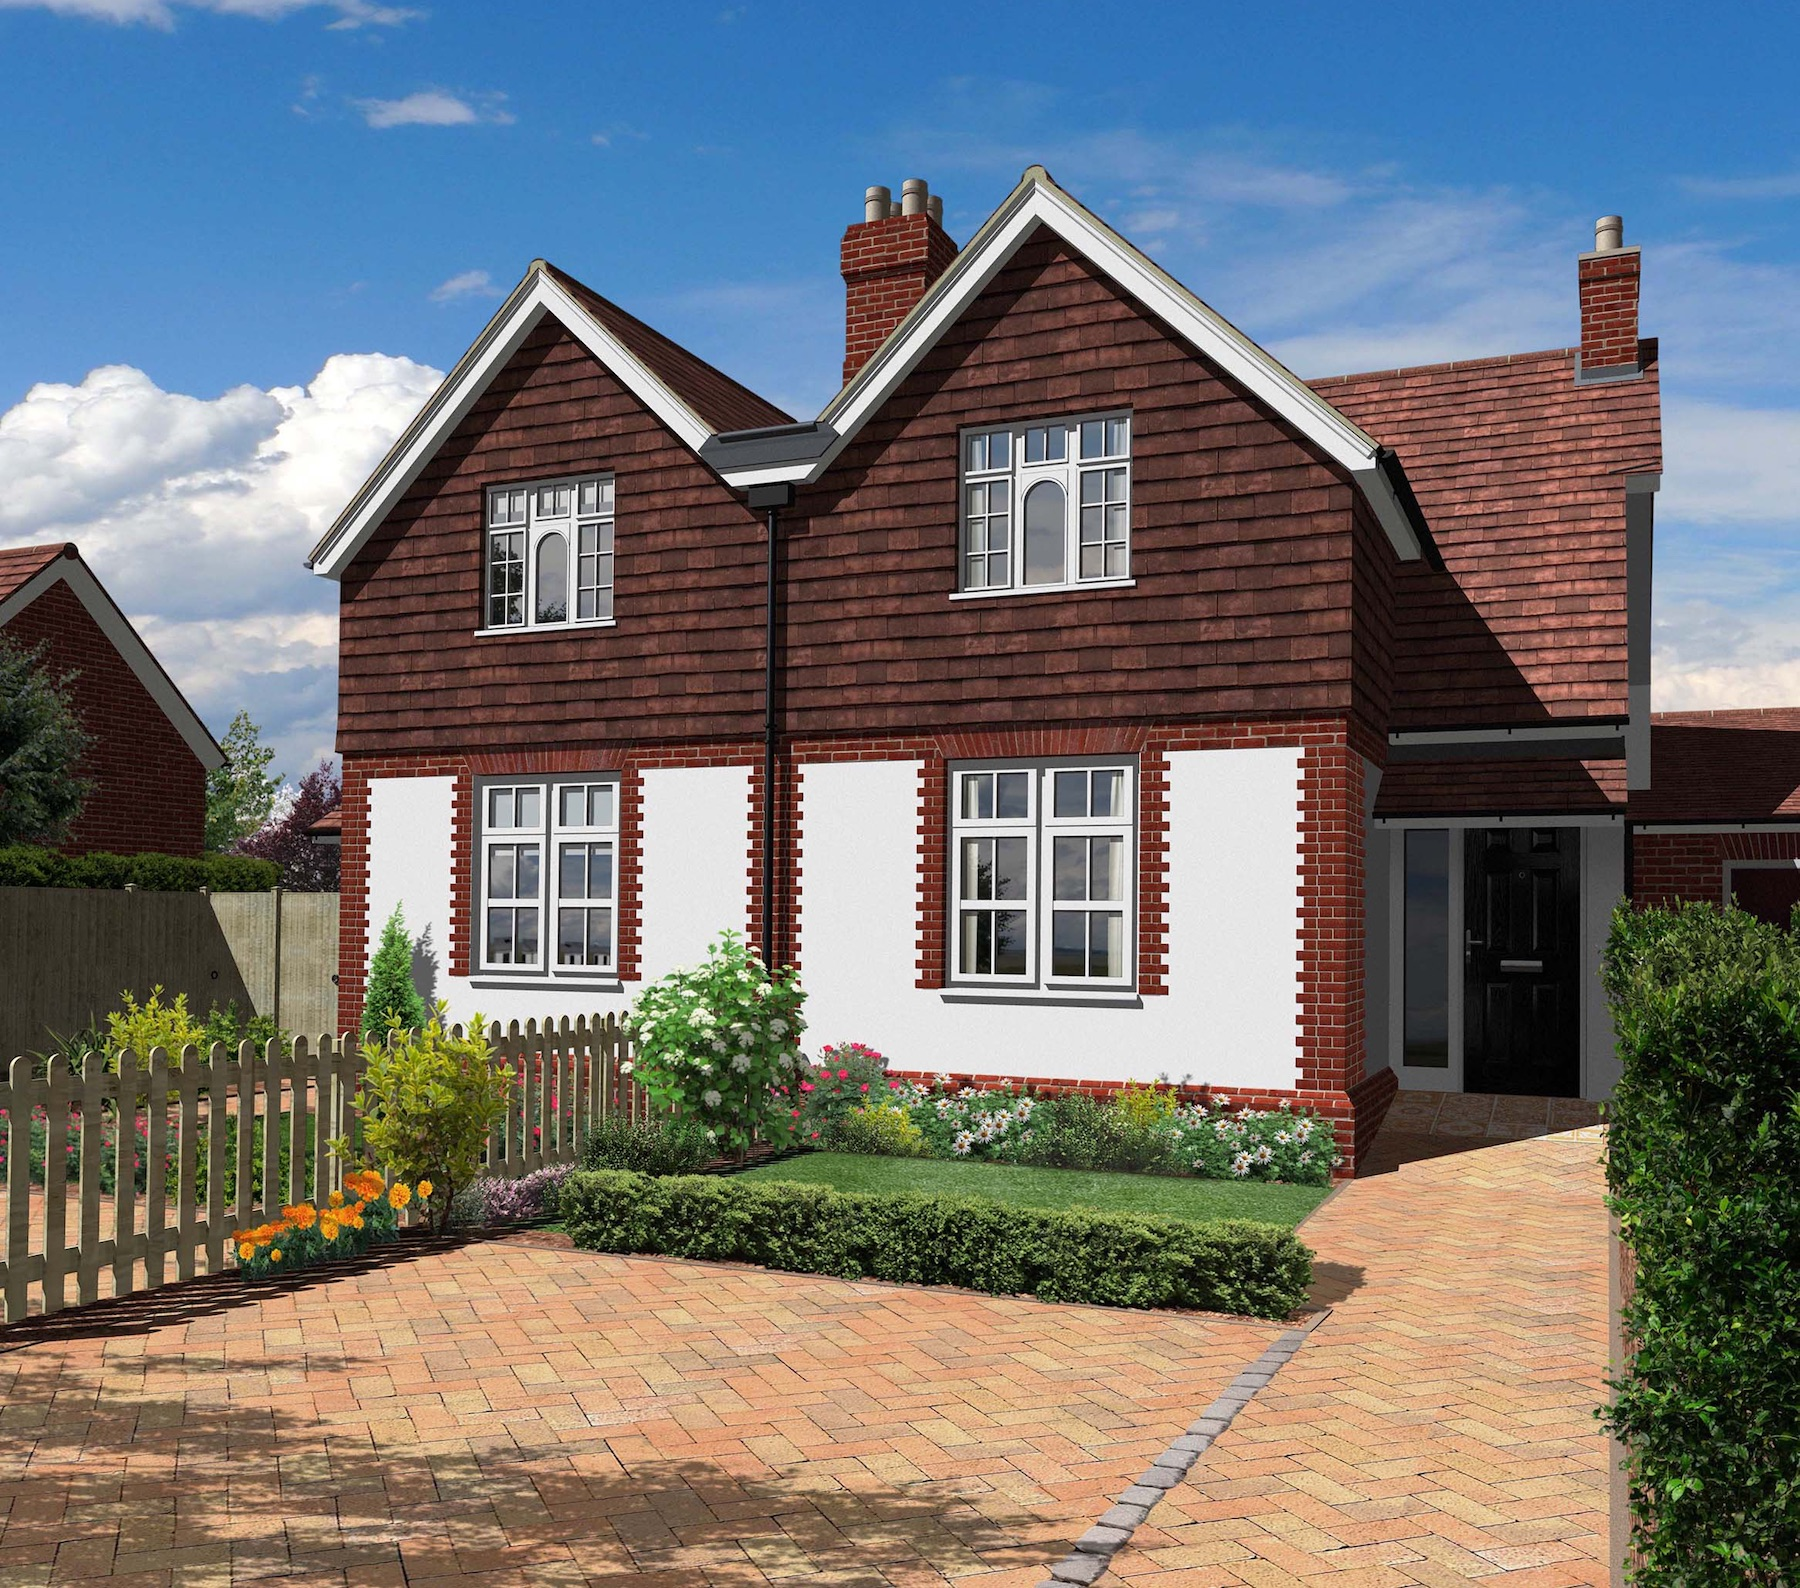 2 3 bedroom semi-detached family homes, Stamford Green, Epsom